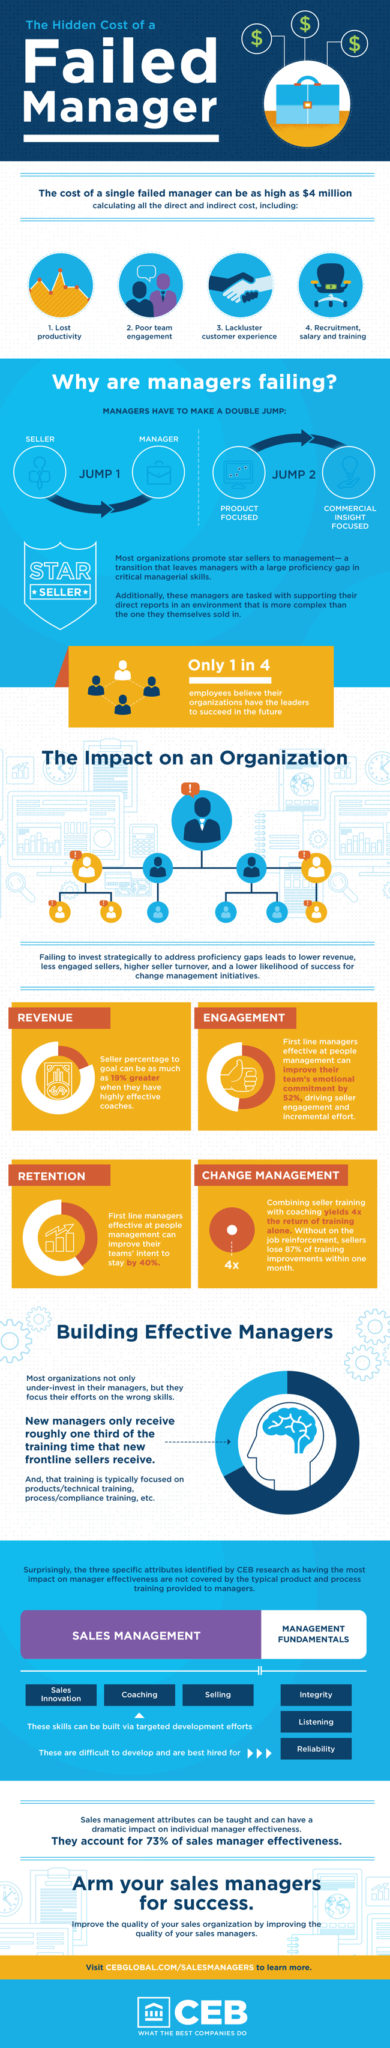 managerial-campaign-infographic-650